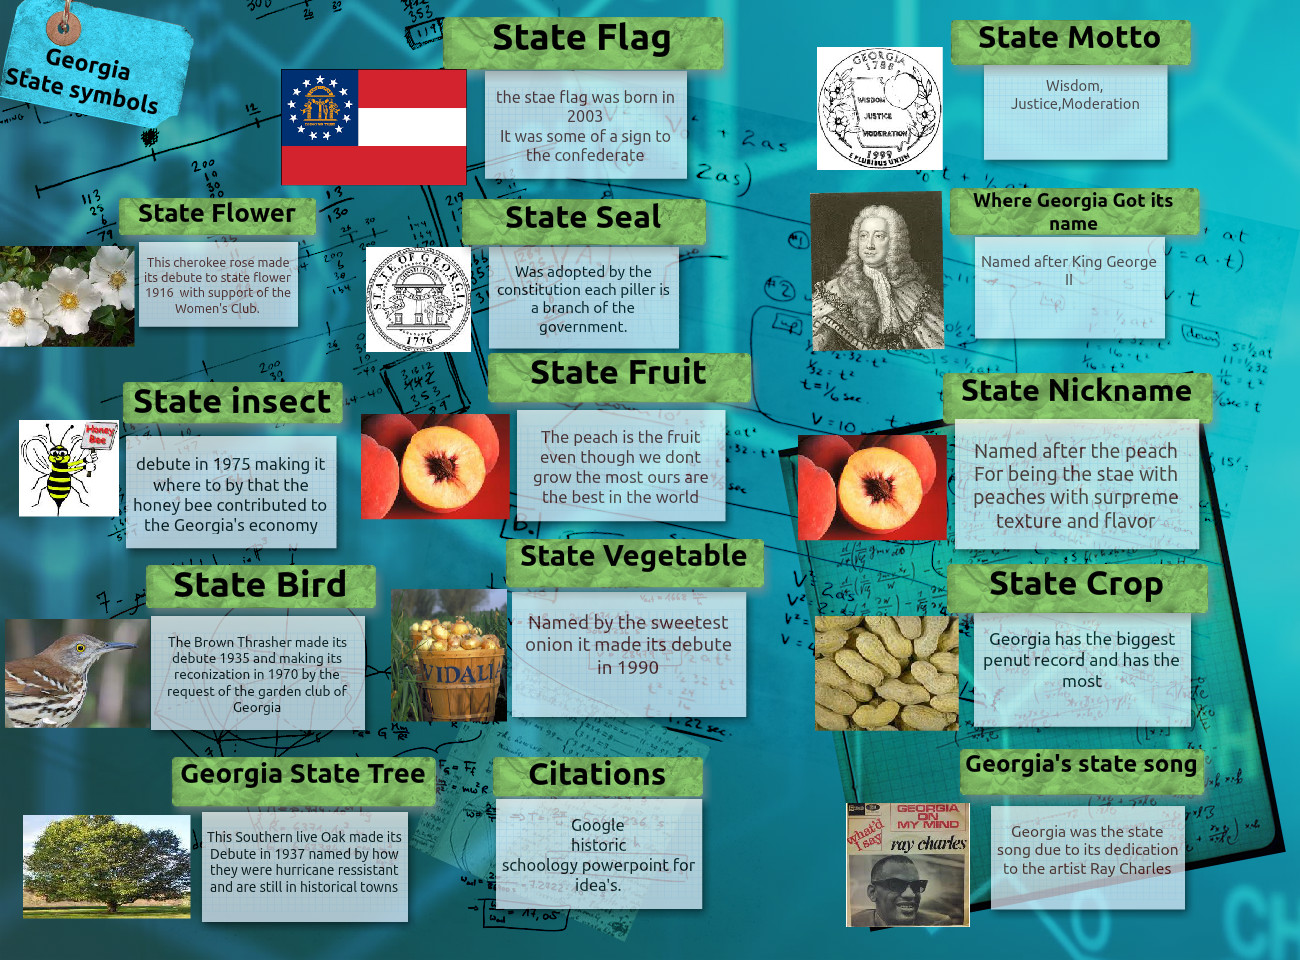 [2015] lawrence gallo: State Flag